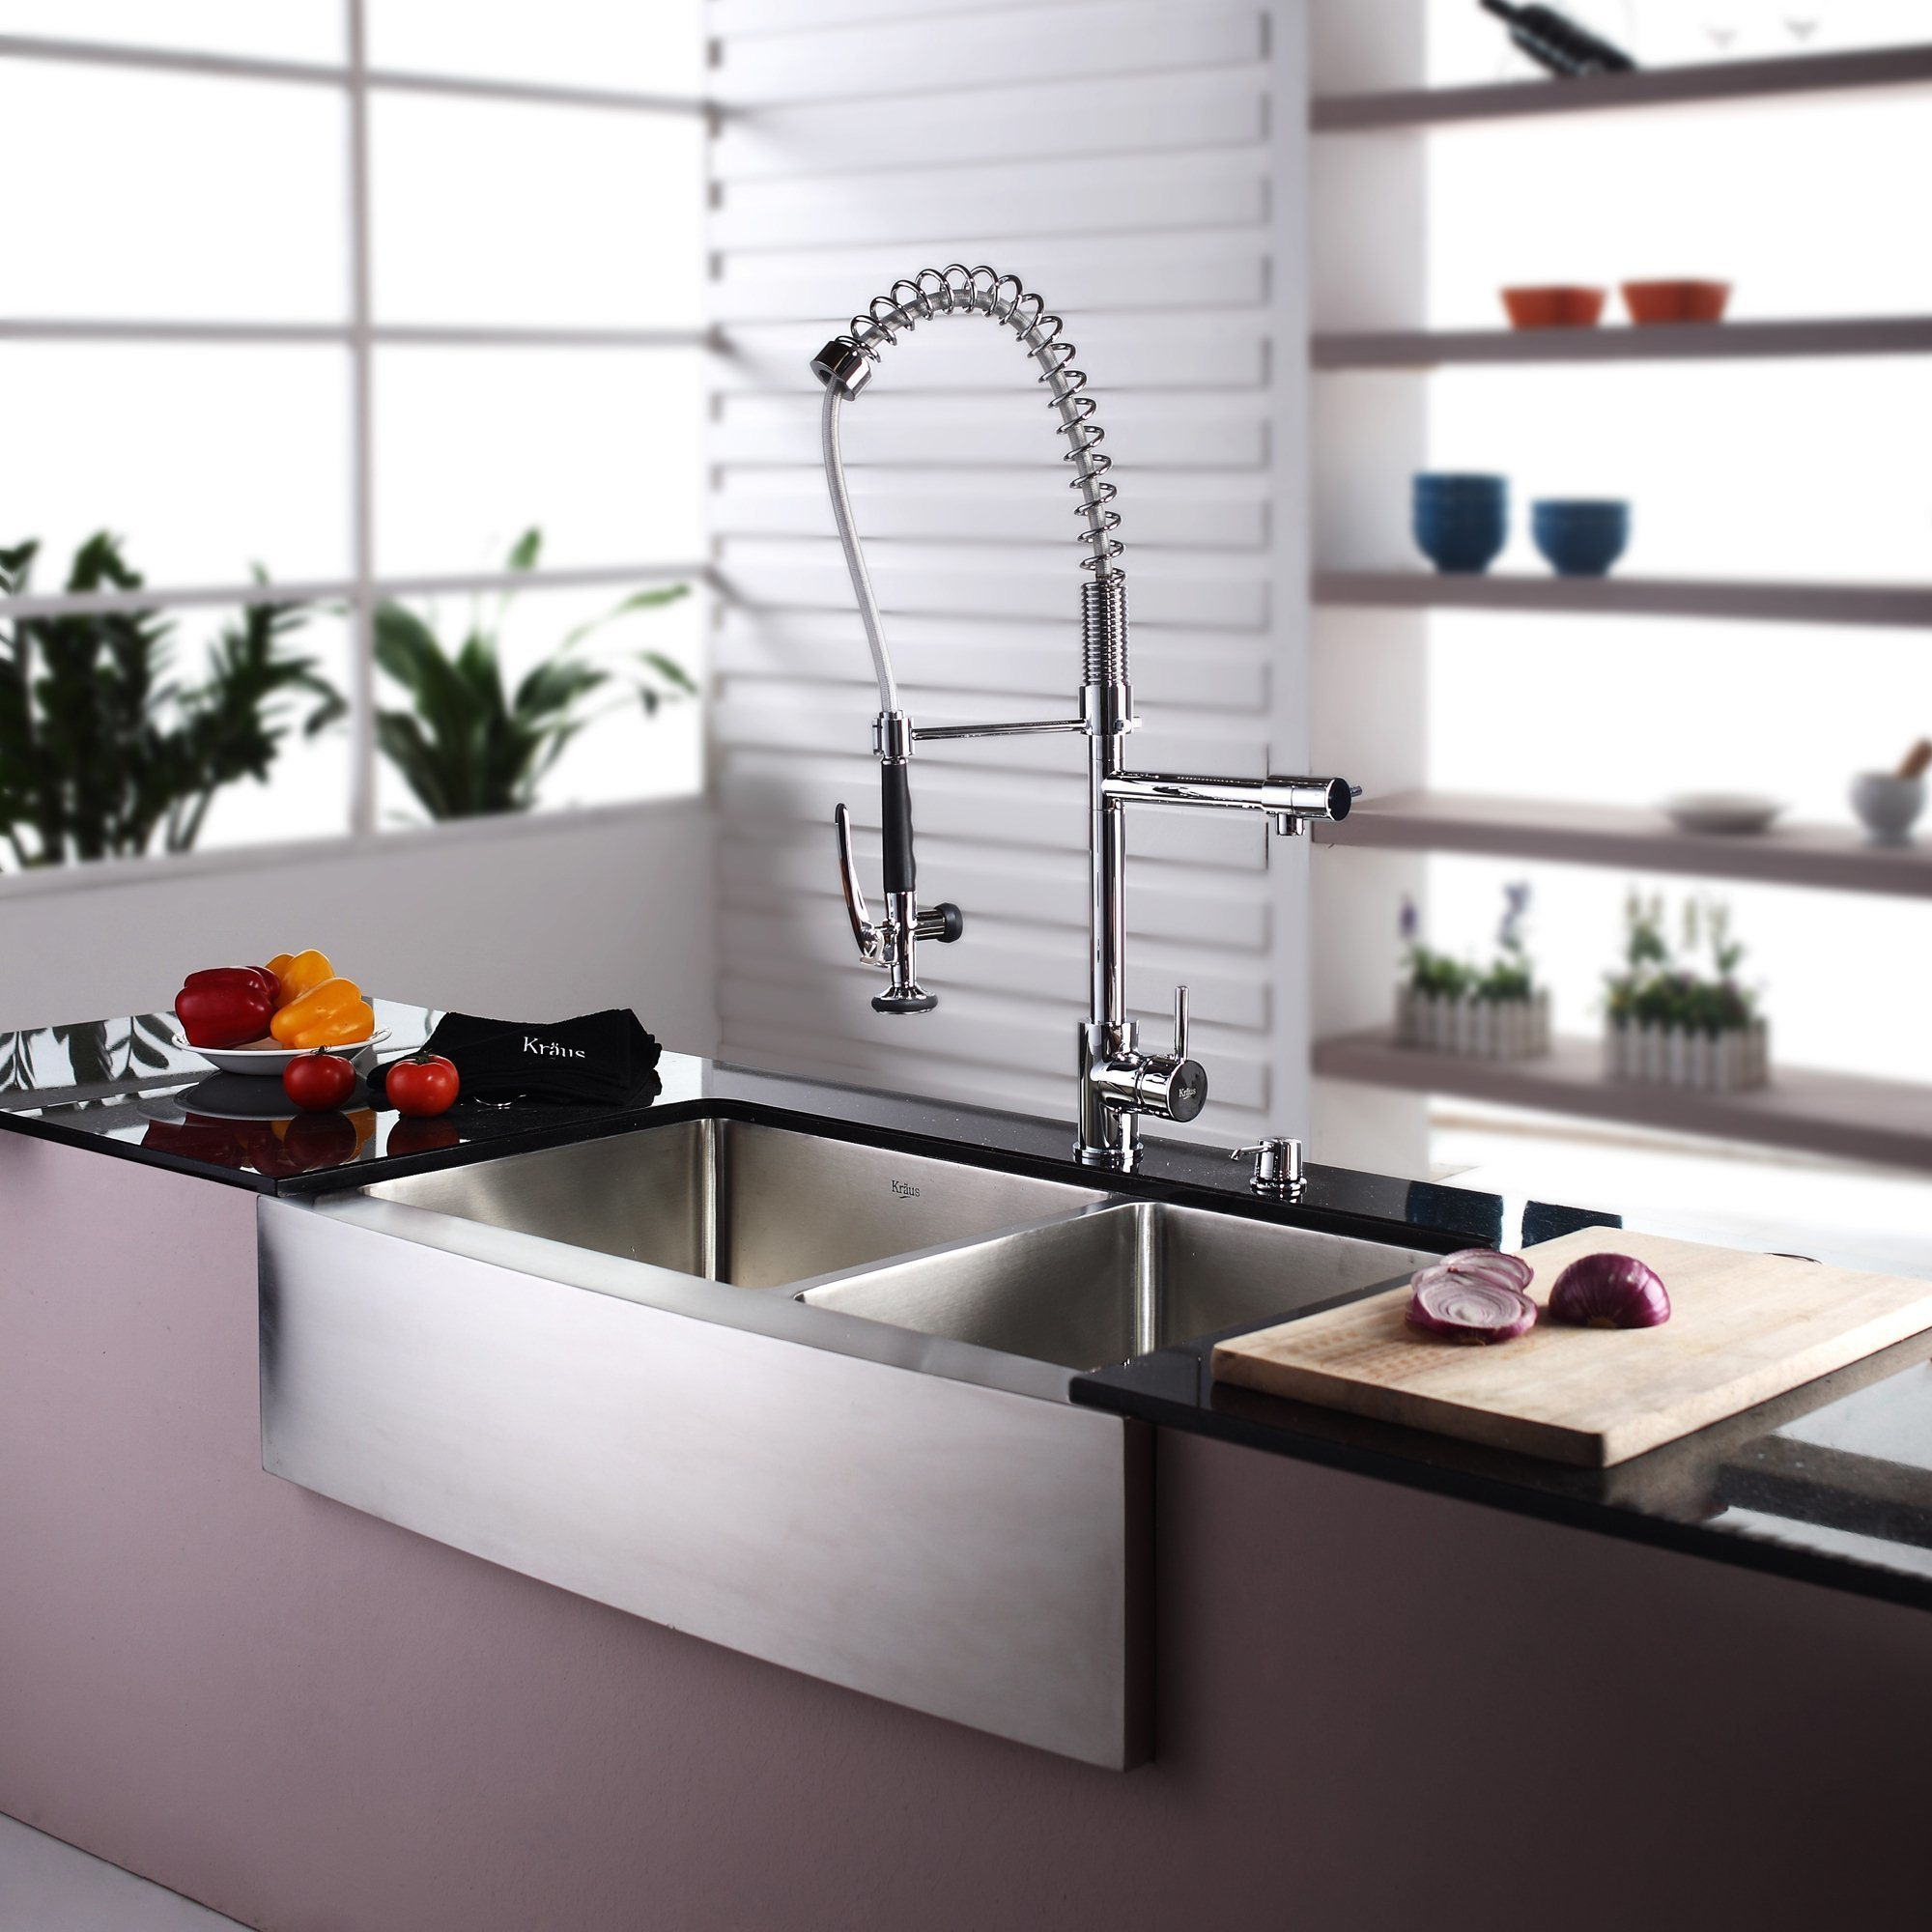 Shop Kraus KPF 1602 Commercial Style 1 Handle 2 Function Pre Rinse  Sprayhead Pull Down Kitchen Faucet And Soap Dispenser   On Sale   Free  Shipping Today ...